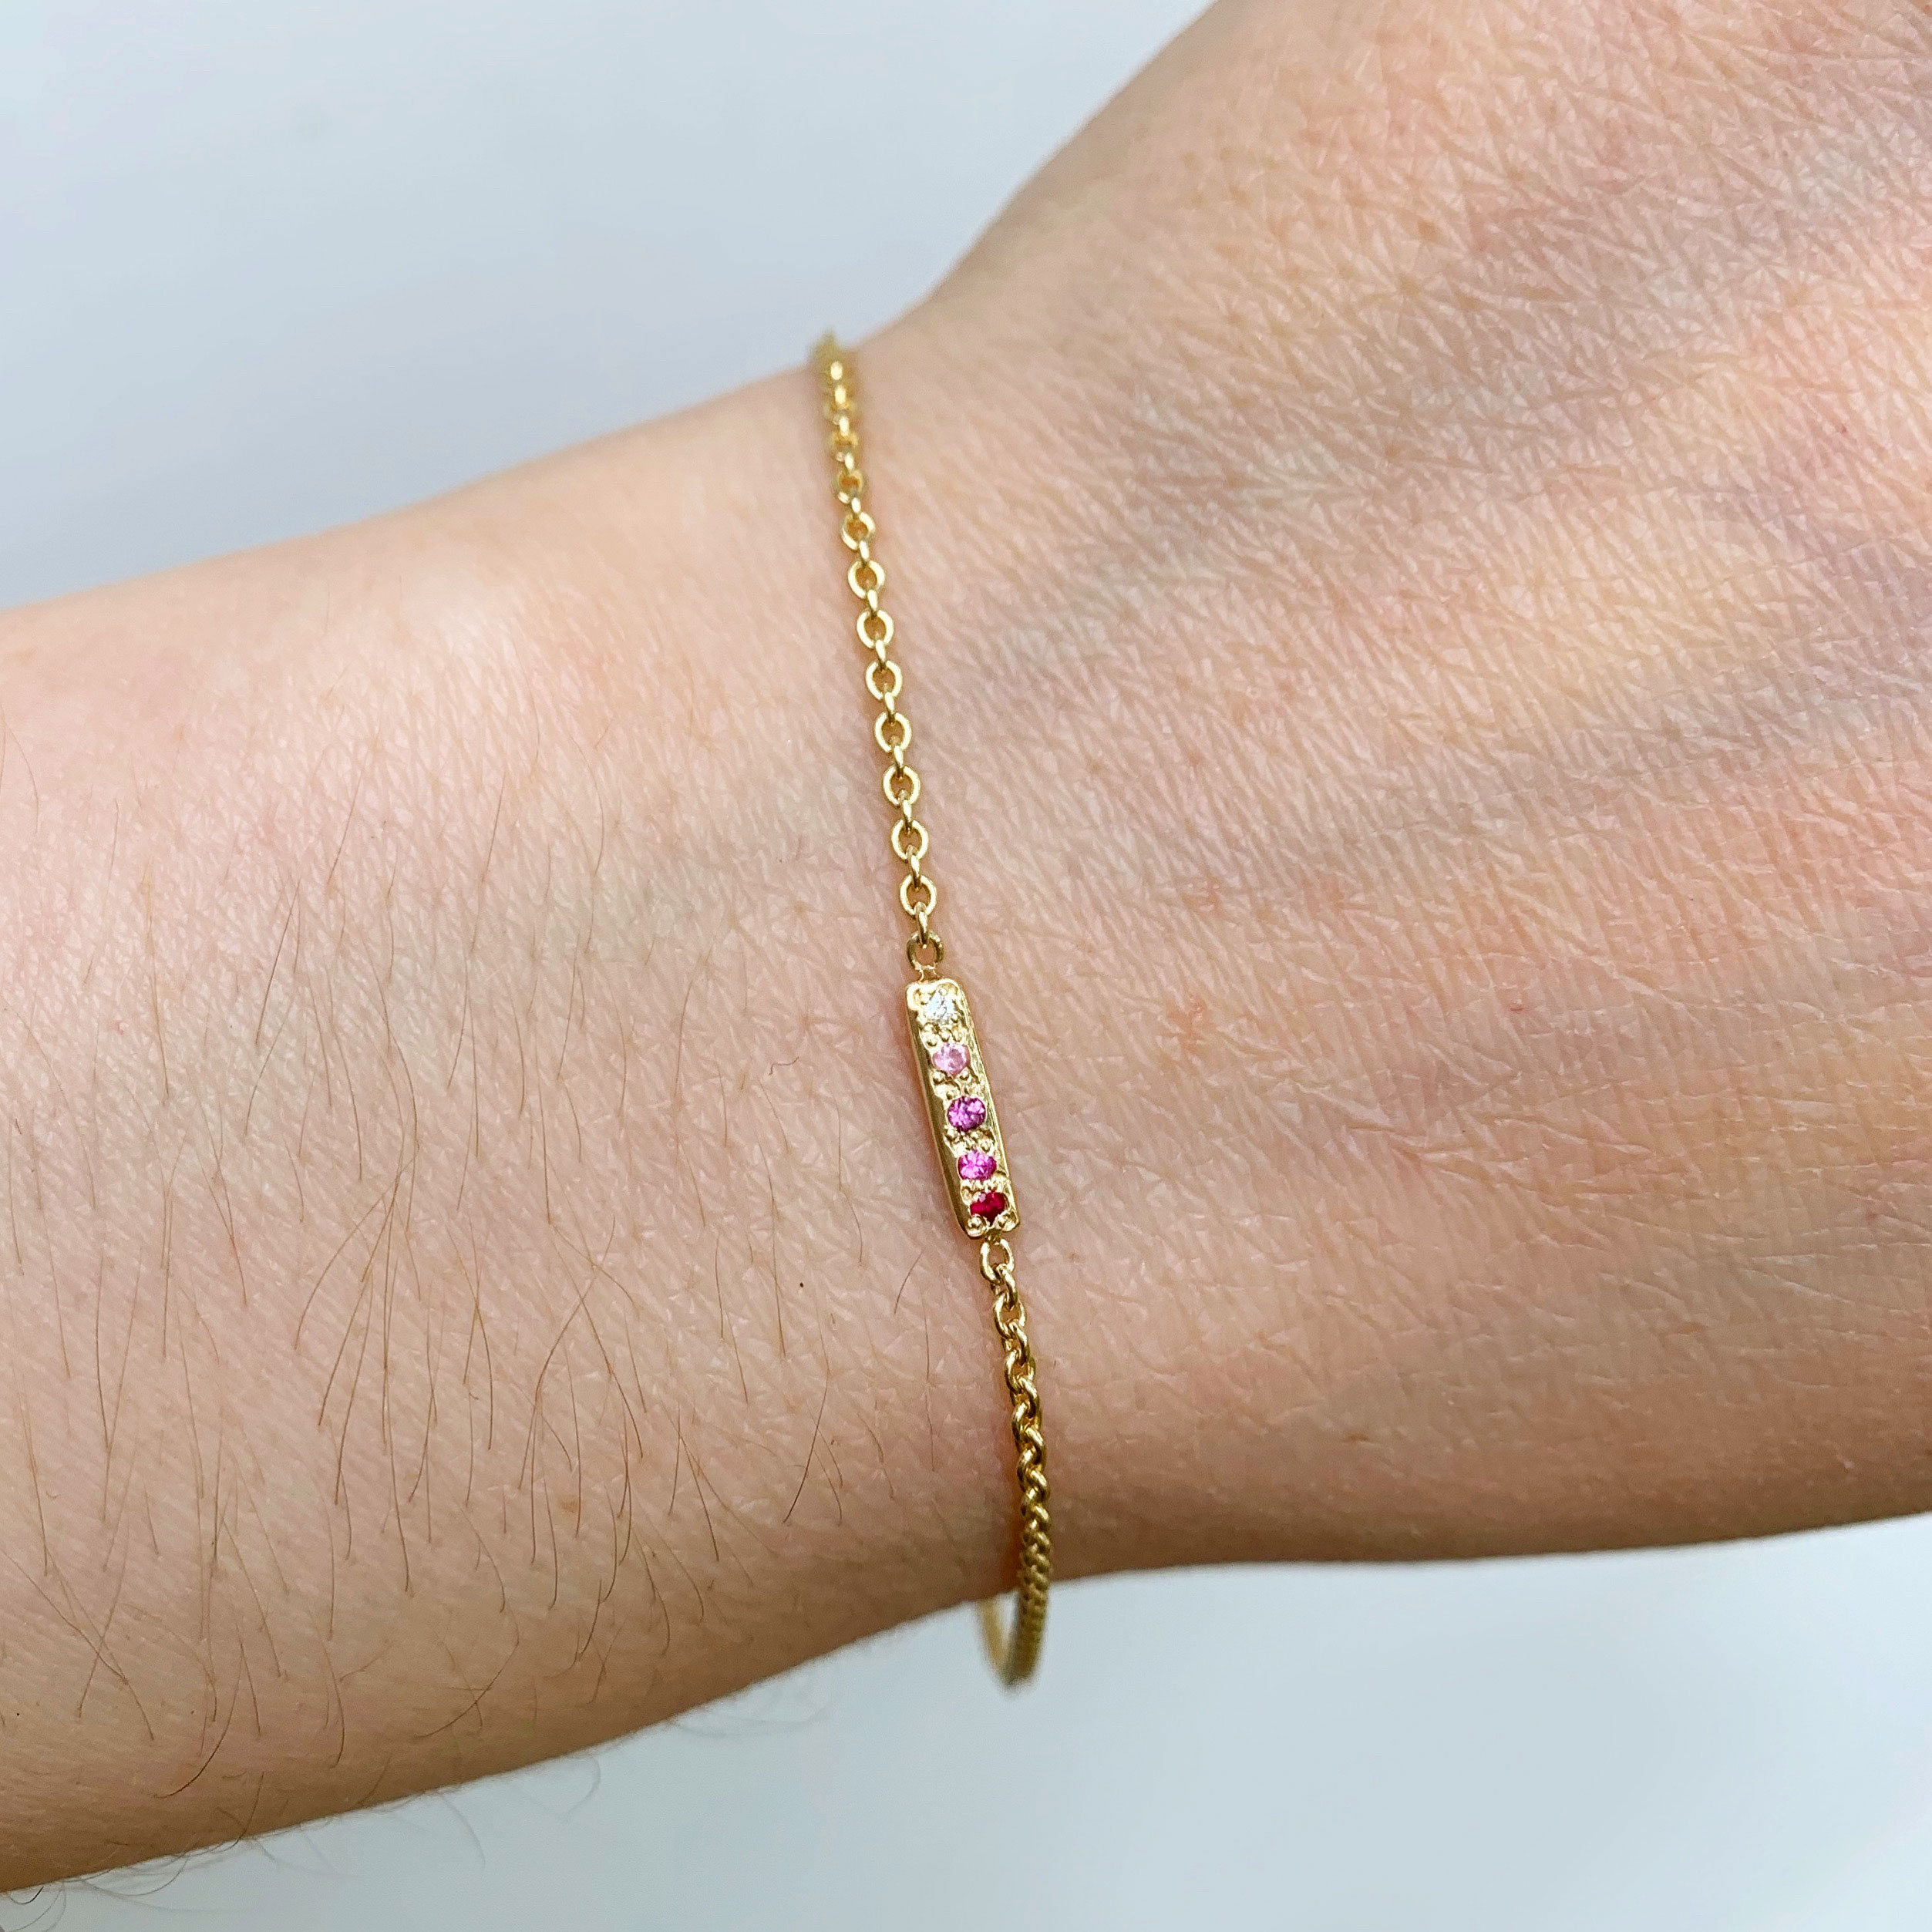 wearing the skinny bar bracelet in 14k yellow gold